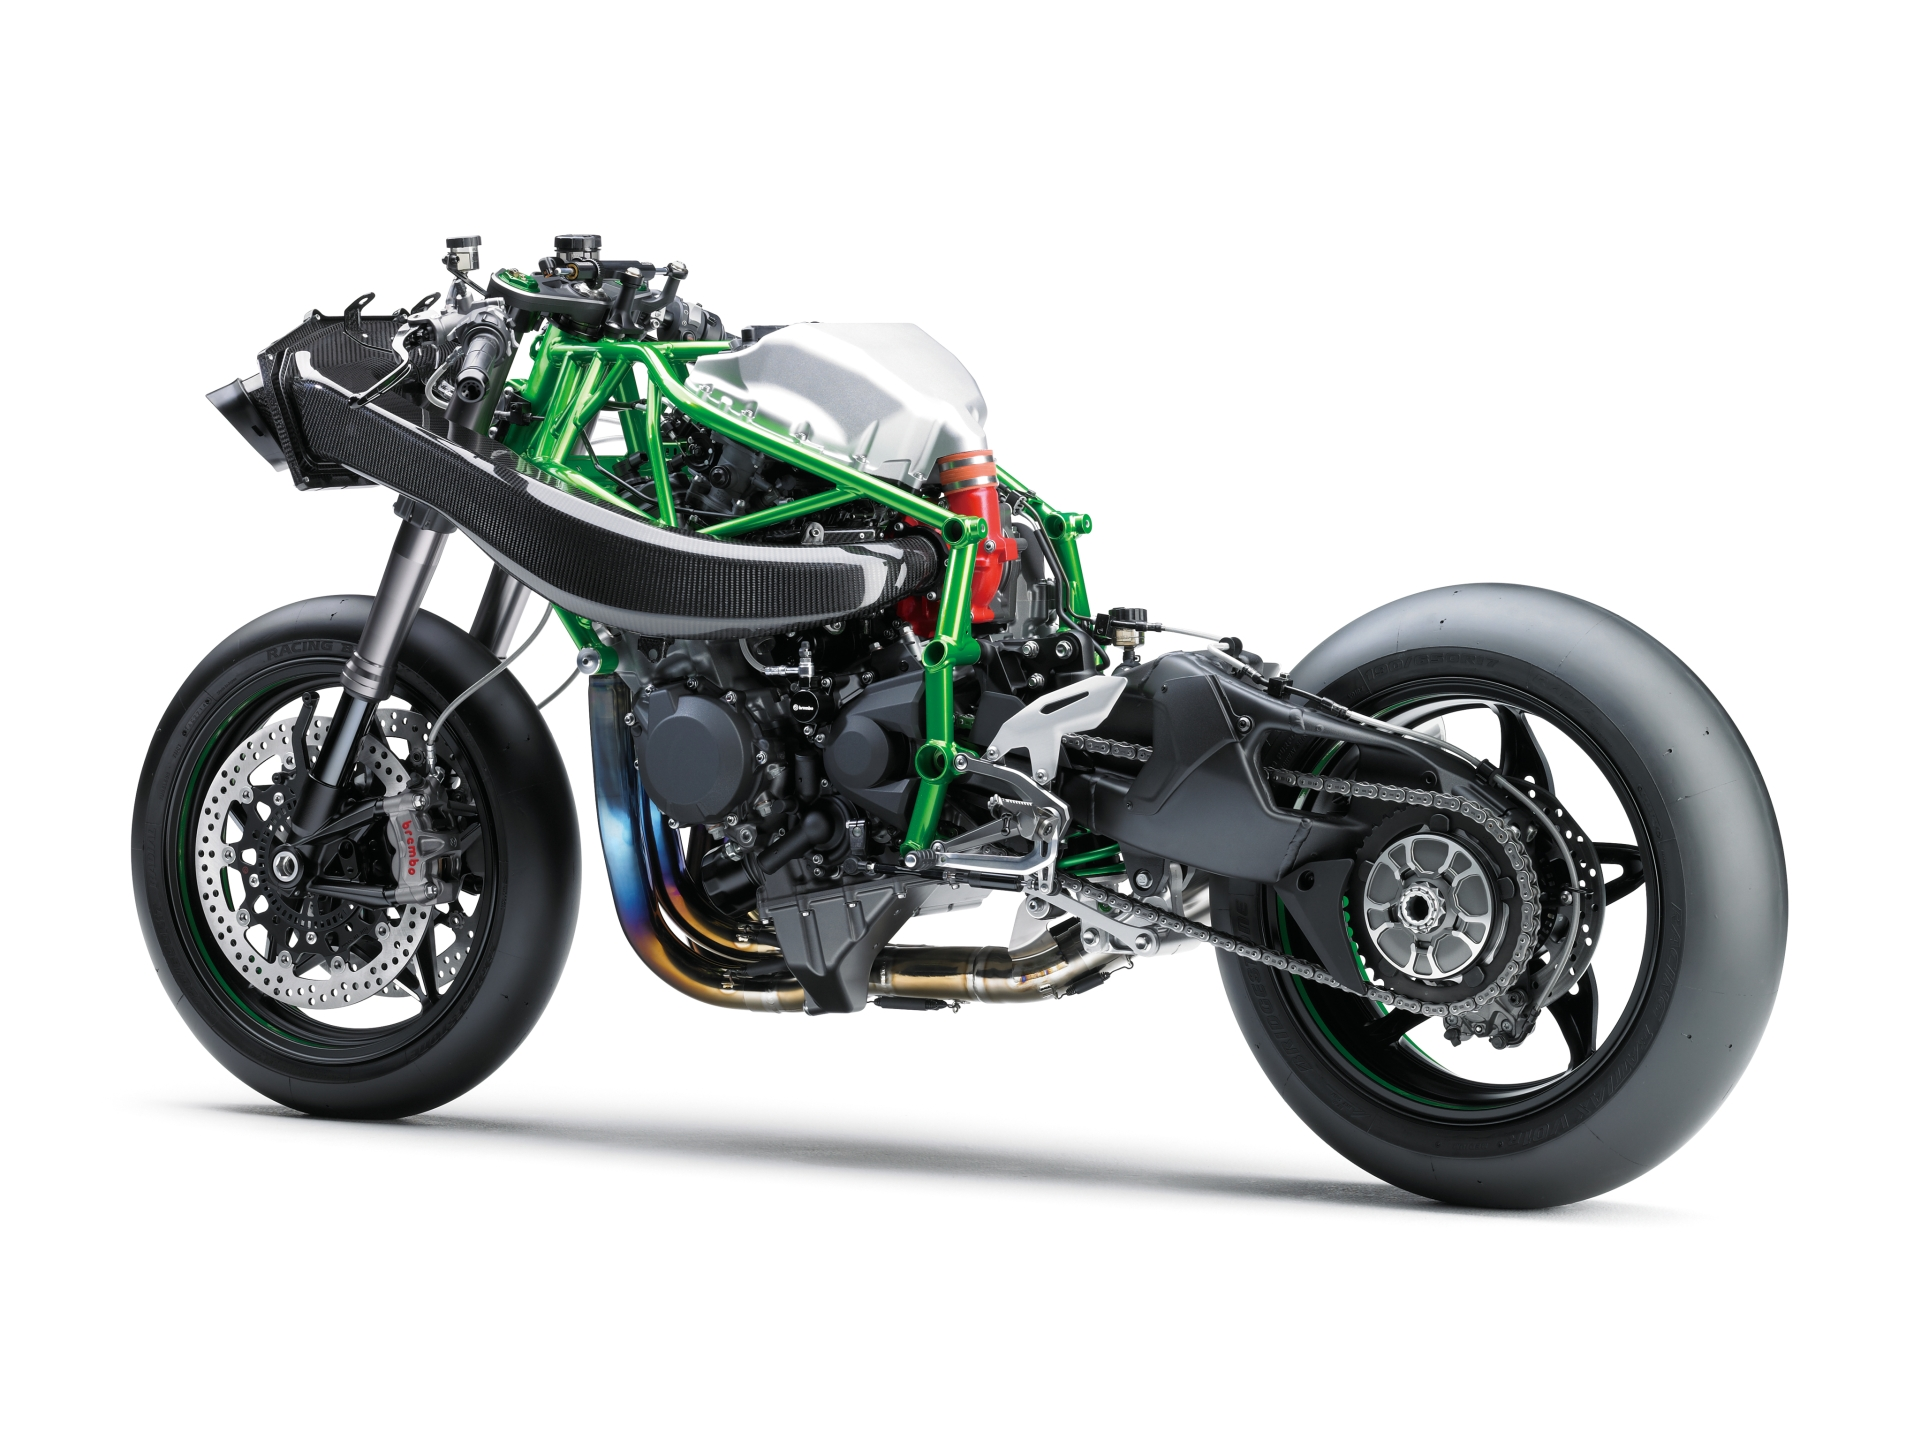 Kawasaki Ninja H2 And H2r Prices Confirmed Autoevolution